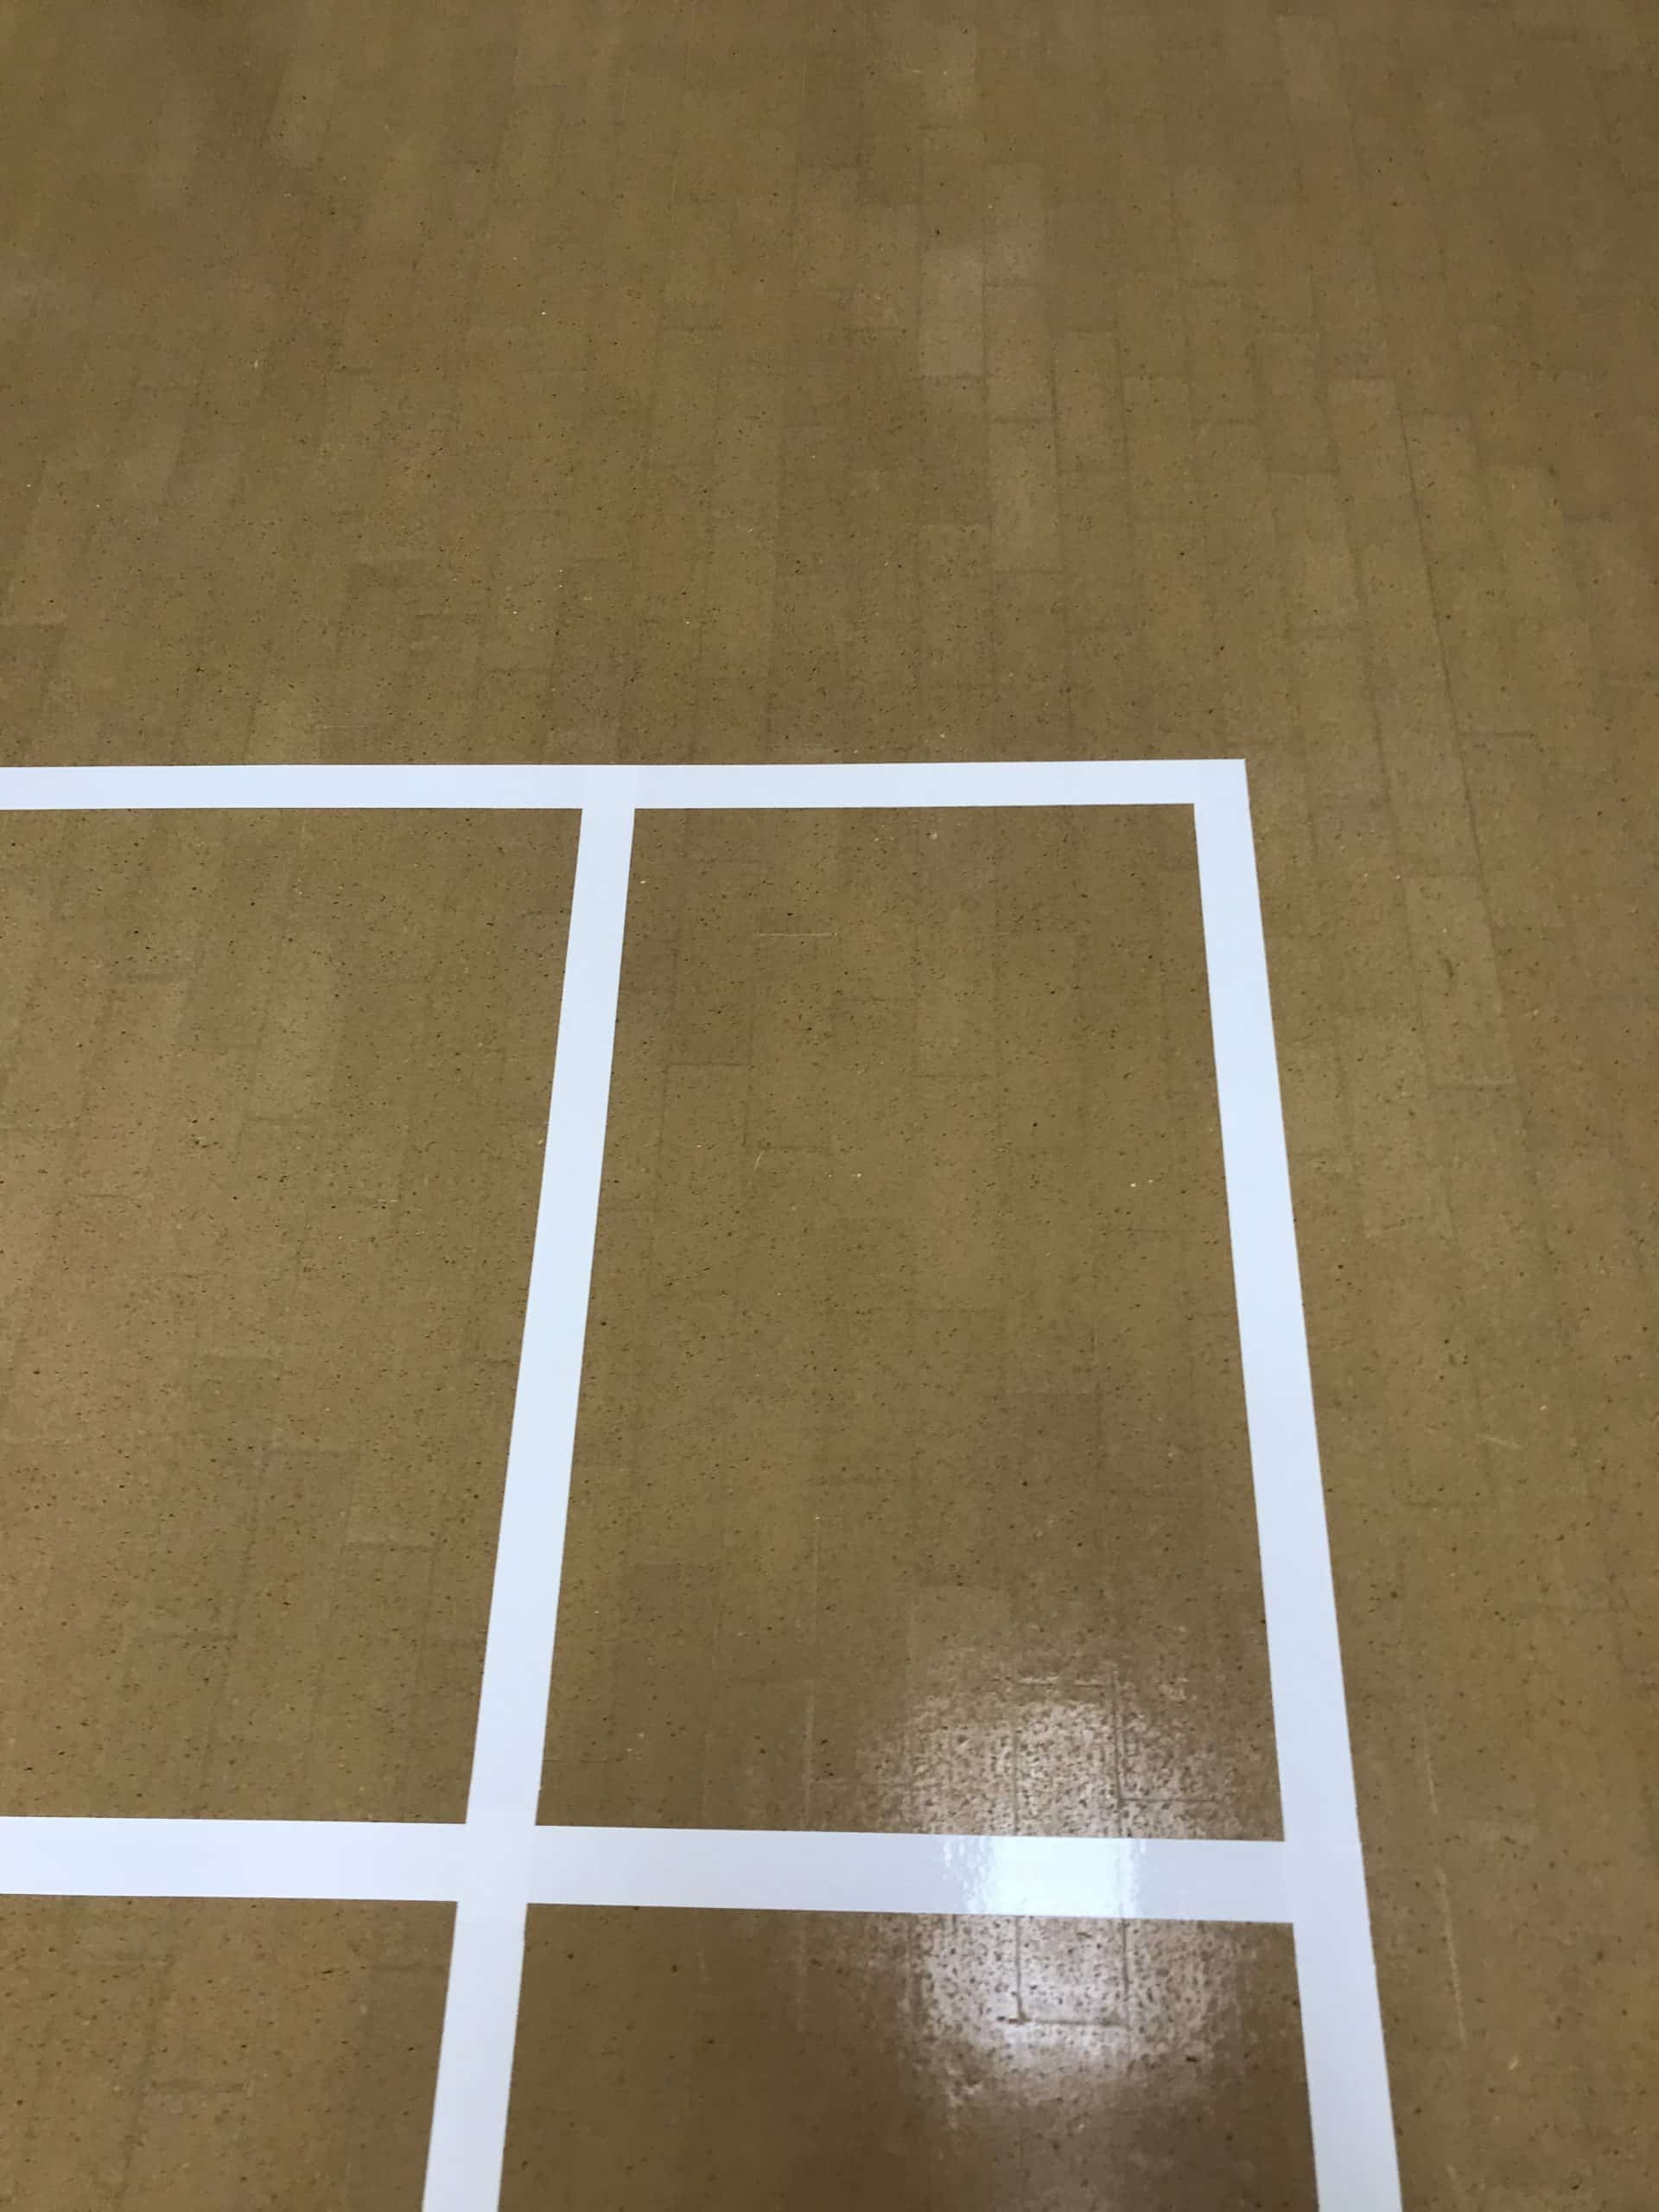 sports-hall-restoration-court-markings00004